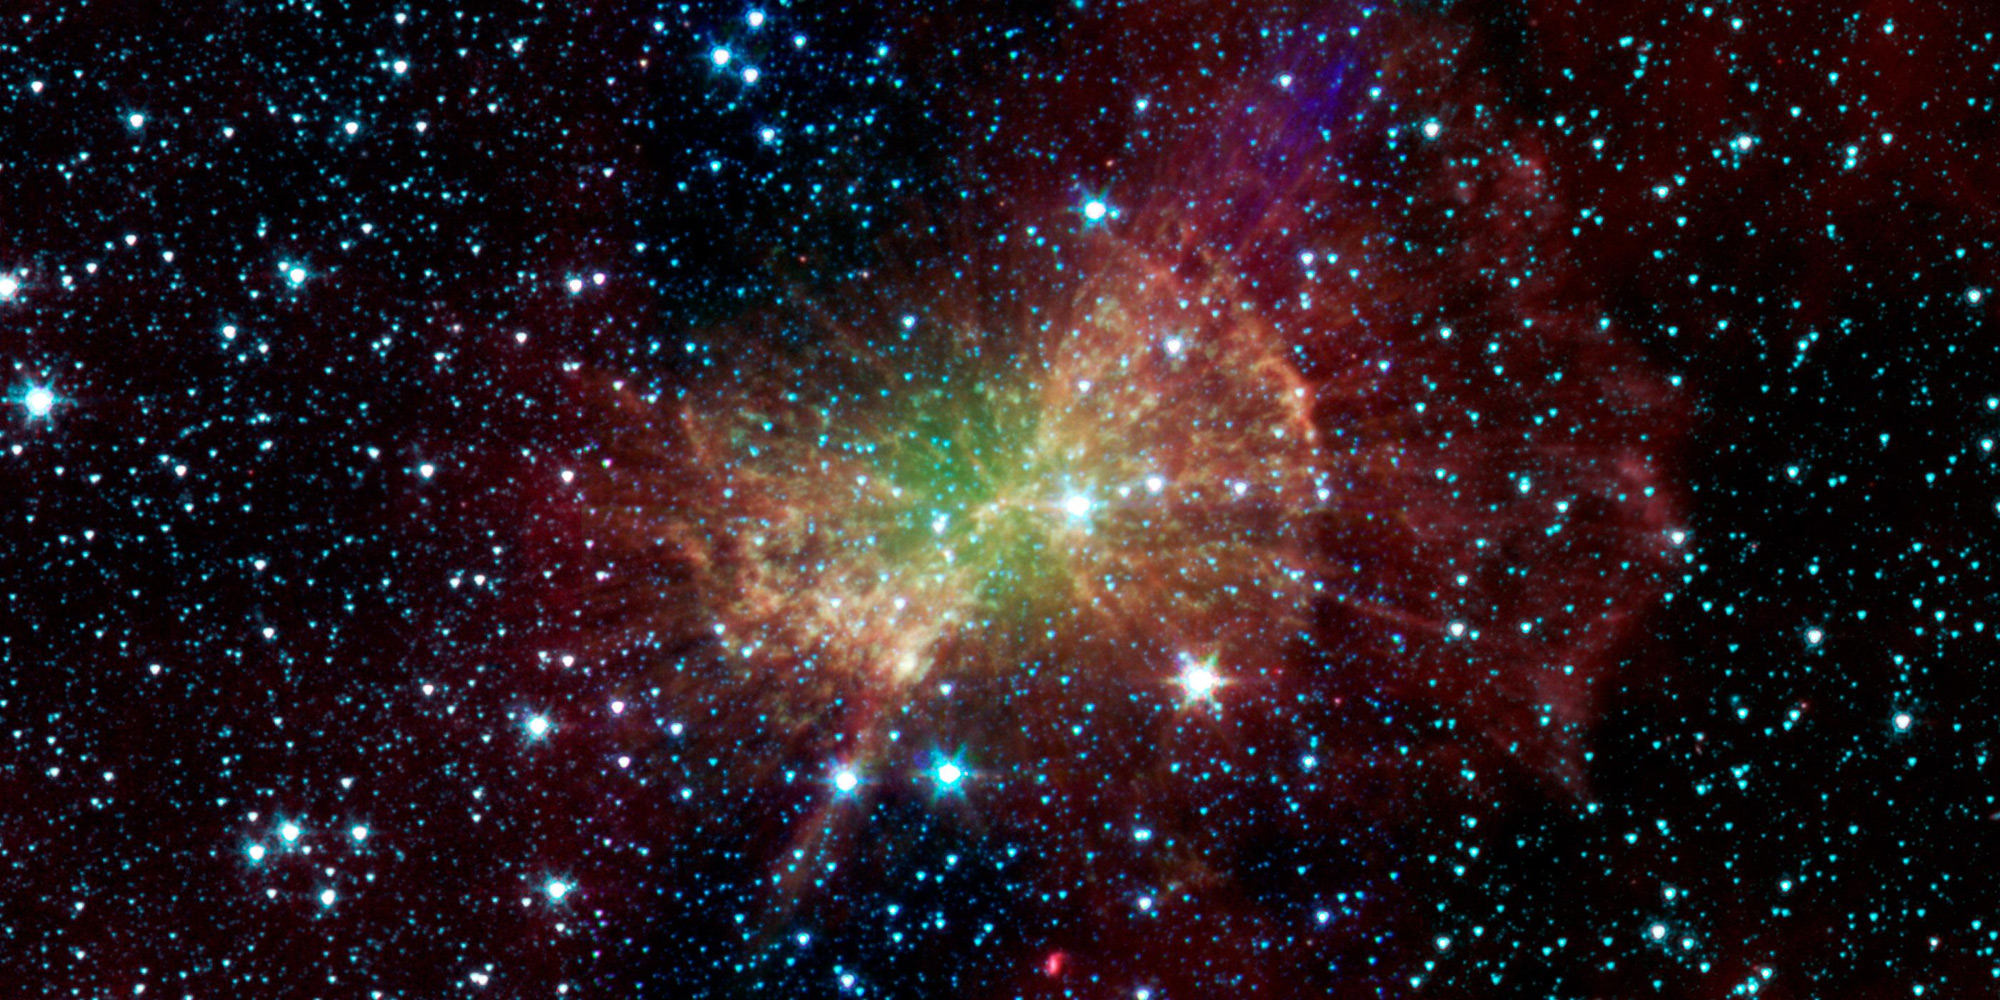 Best Space Photos of the Week - Aug. 20, 2011